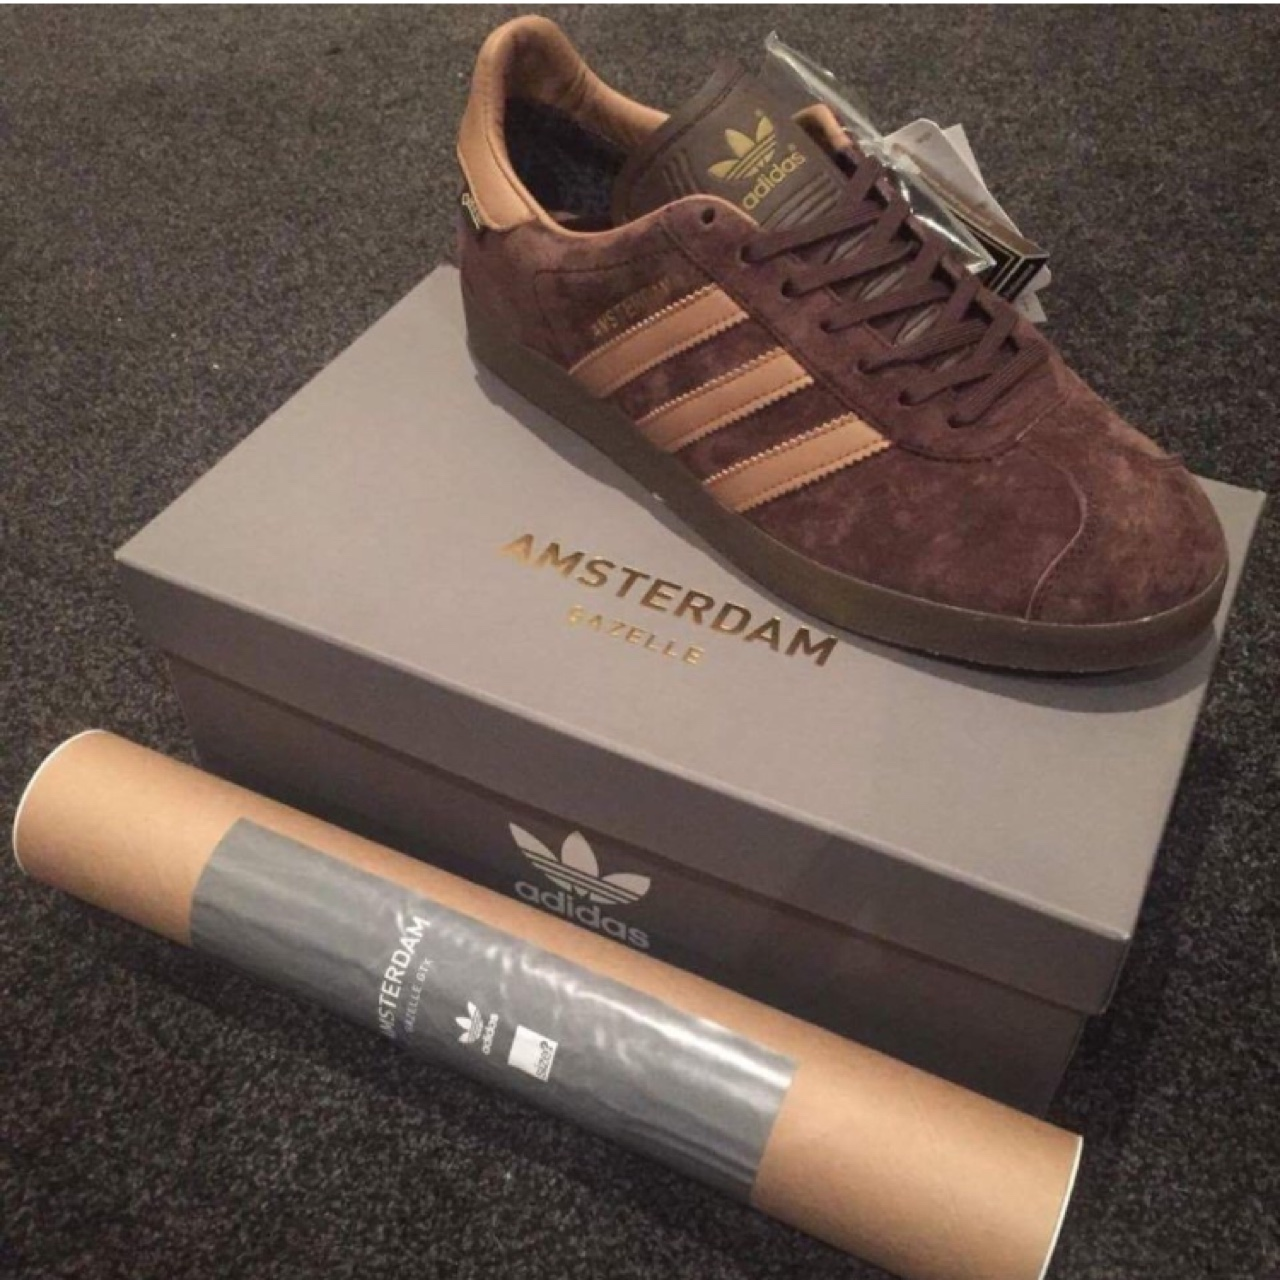 Adidas Amsterdam gazelle goretex poster. Offers only.